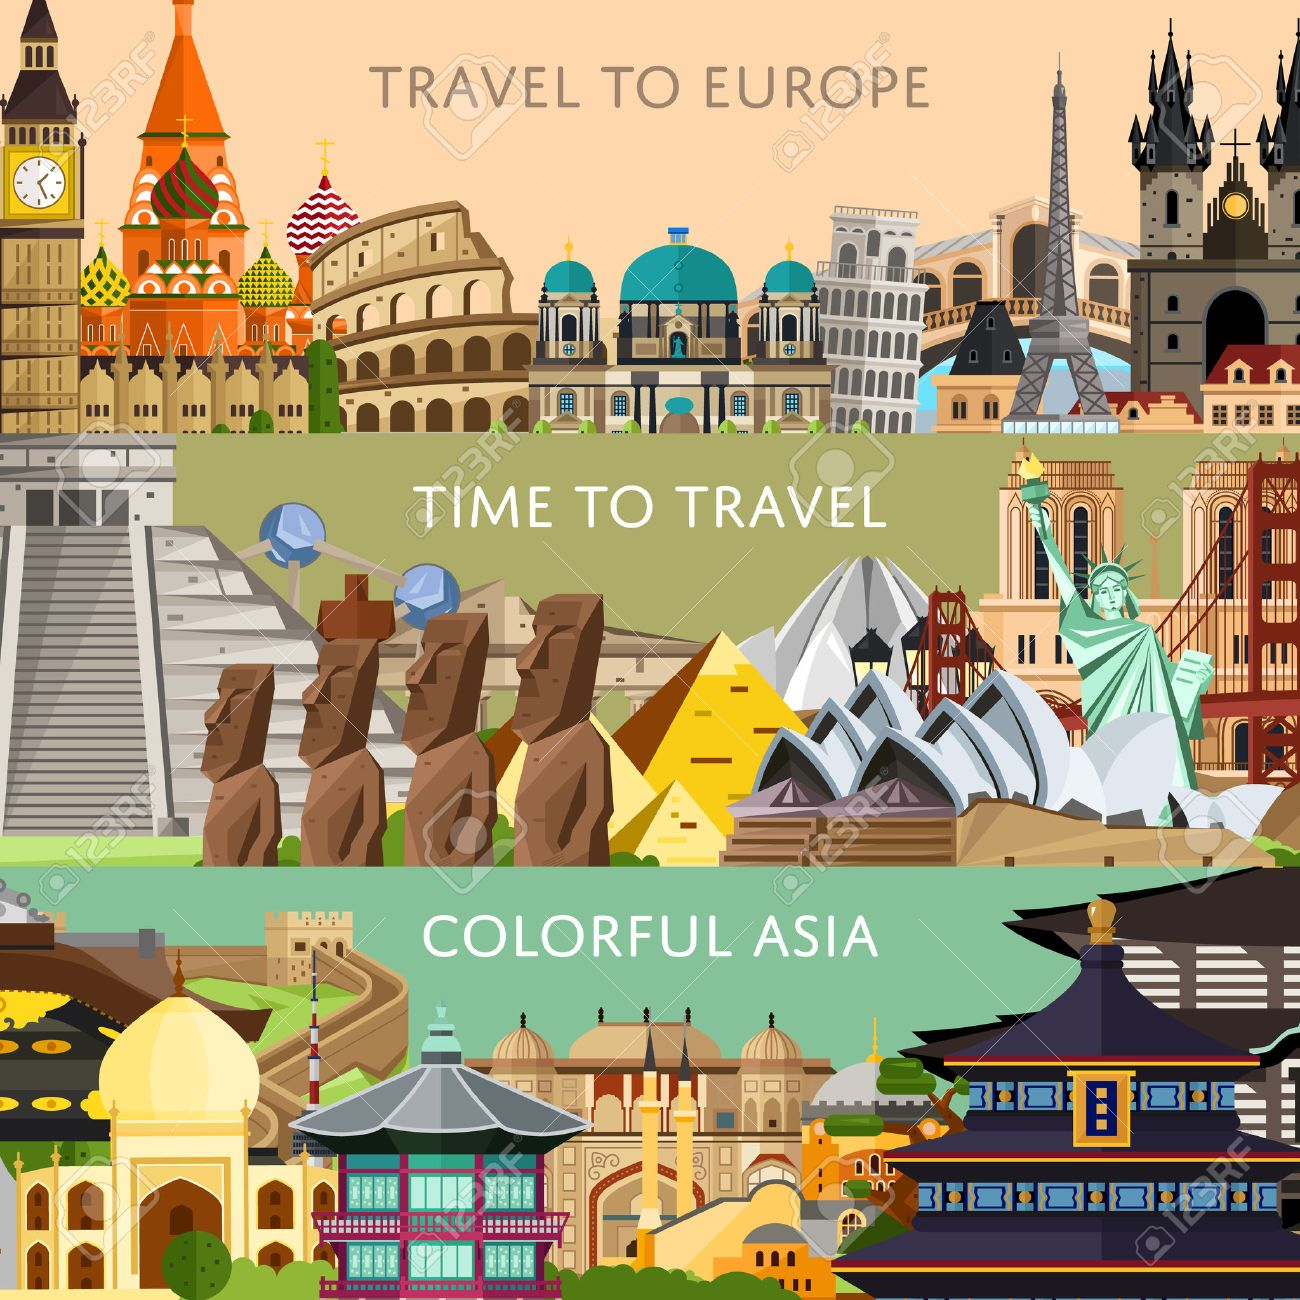 Worldwide Travel Horizontal Flyers With Famous Architectural - Travel to europe